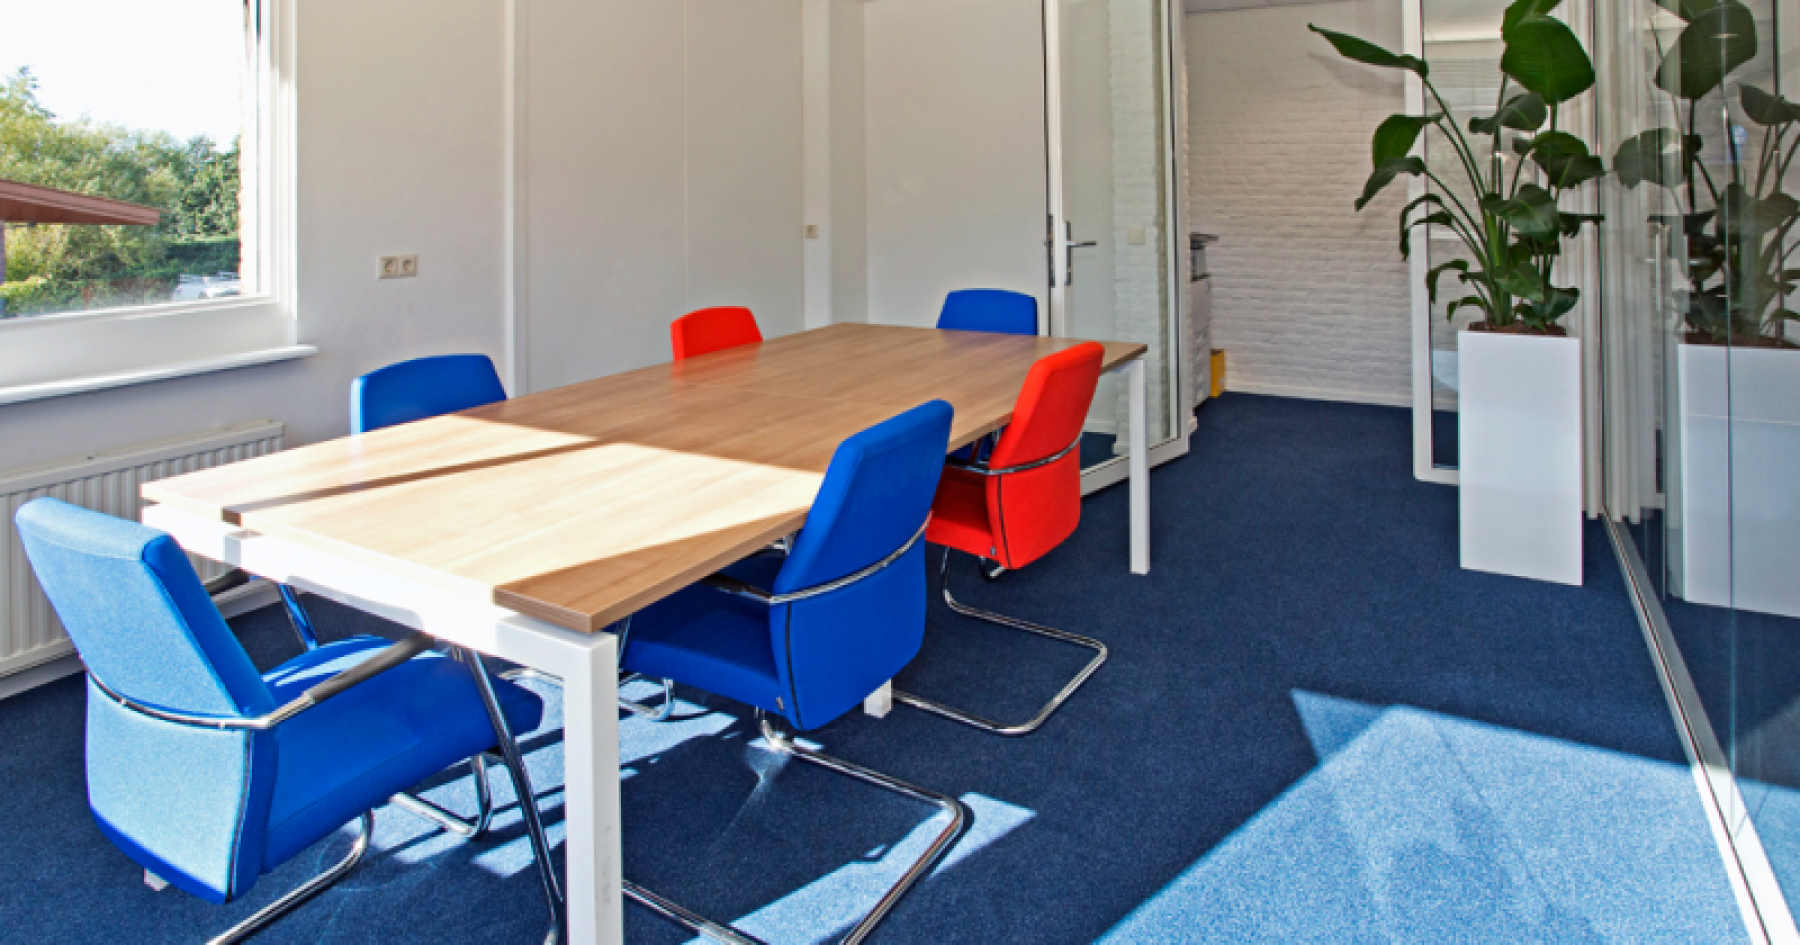 office room blue red chairs space flowers